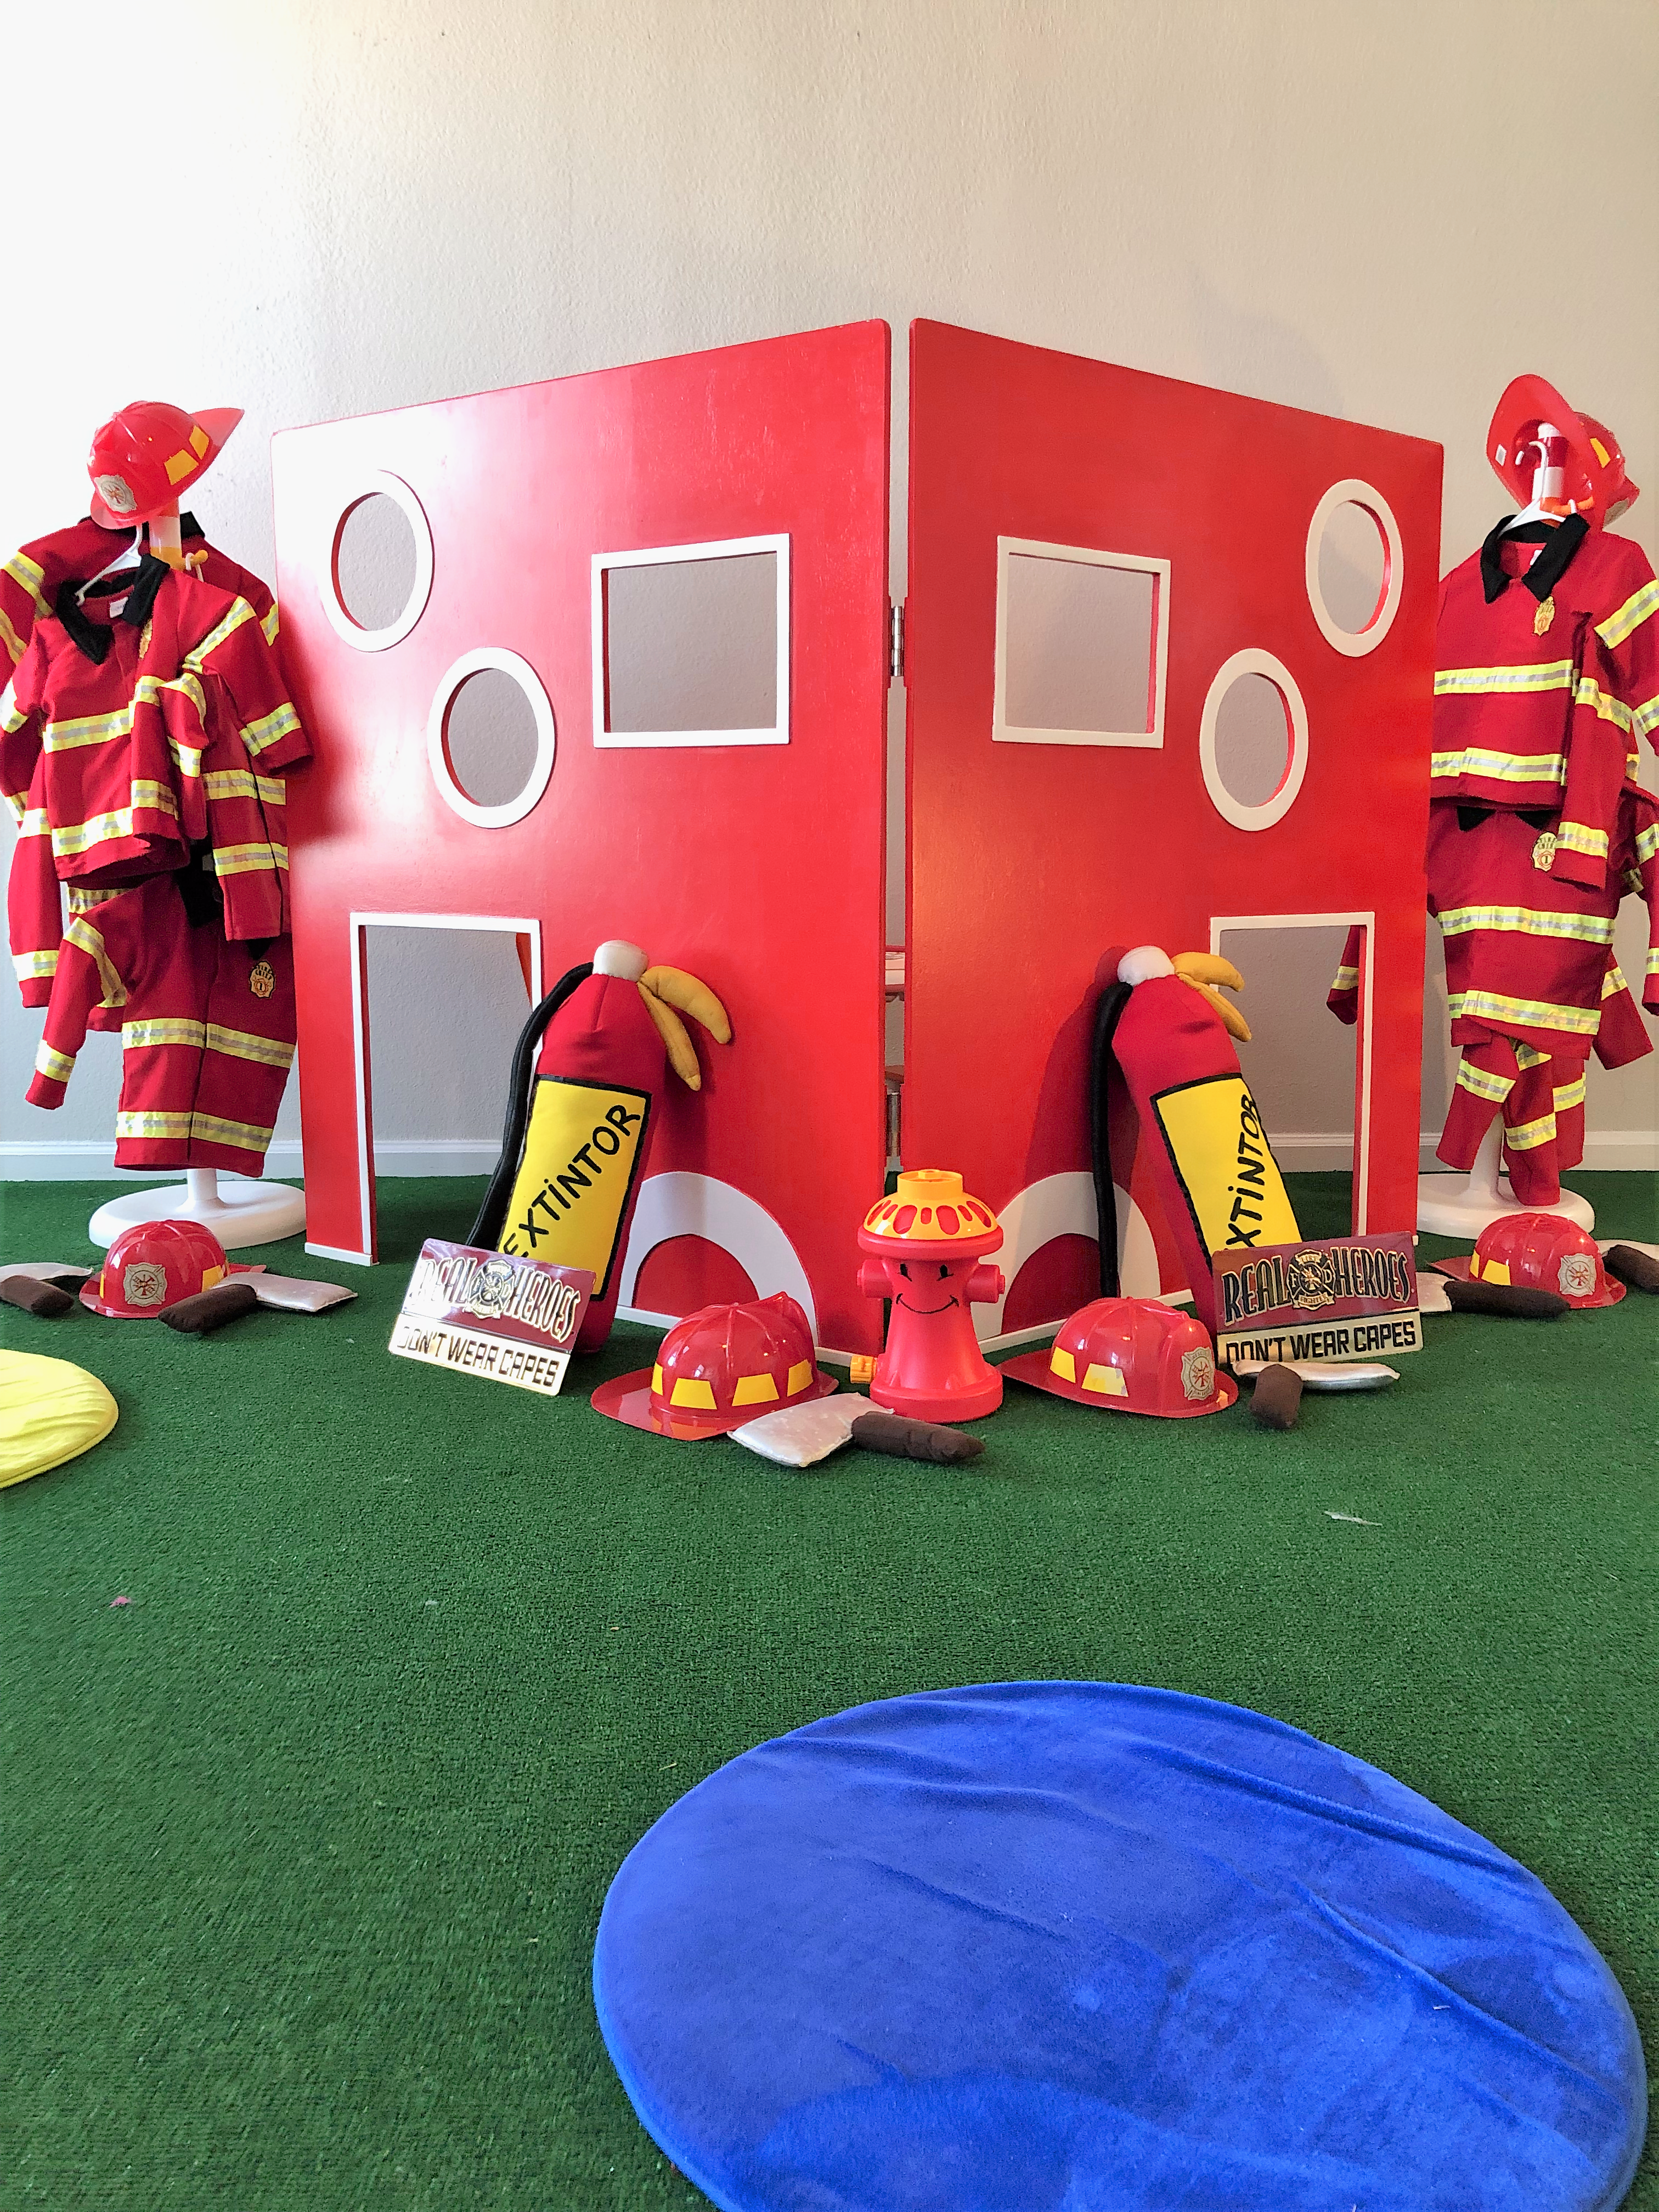 Our Fire Station Setup Axes Helmets And Suits Are Ready To